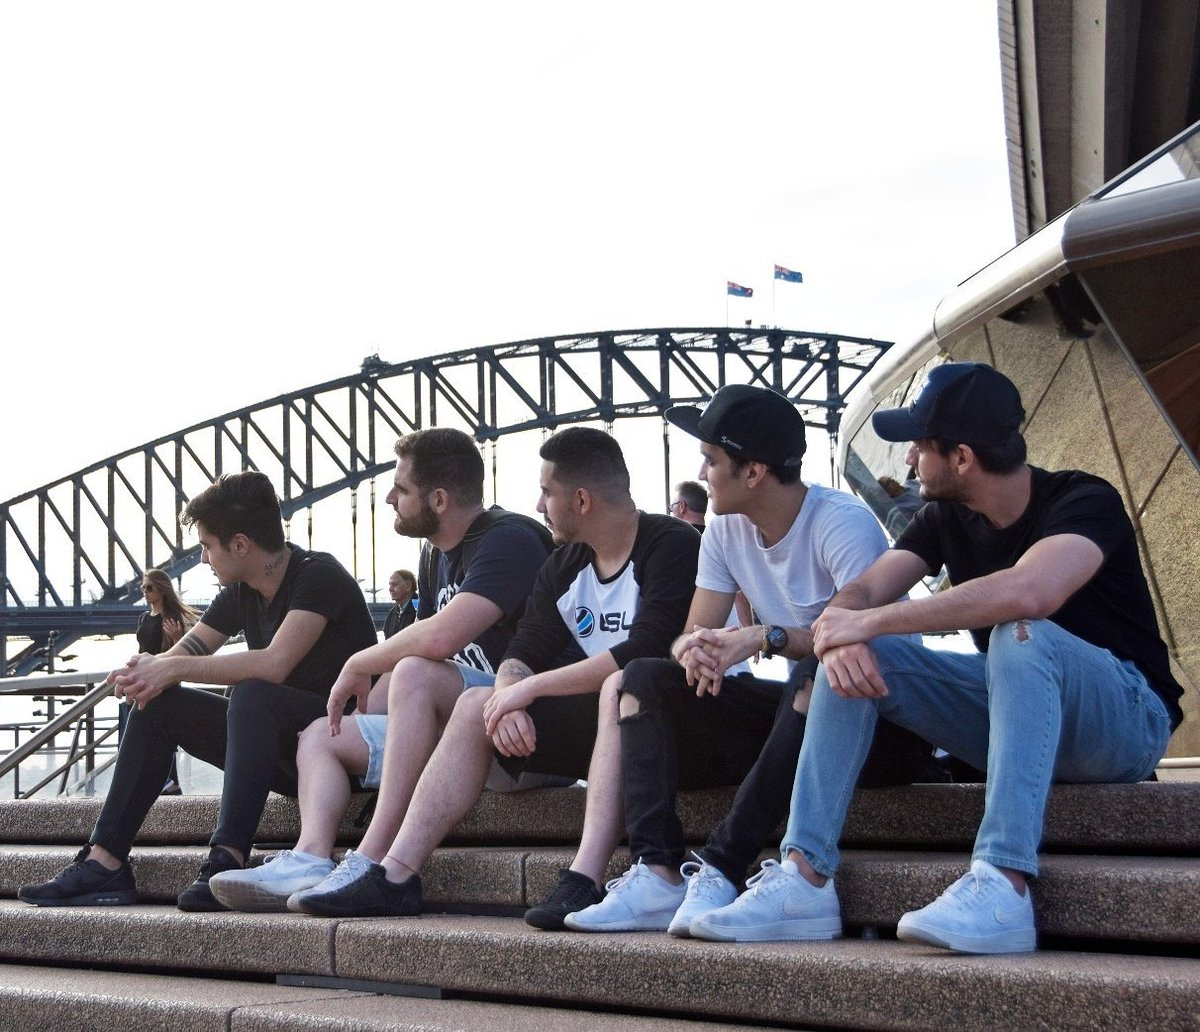 SK Gaming CS:GO in Sydney, Australia.